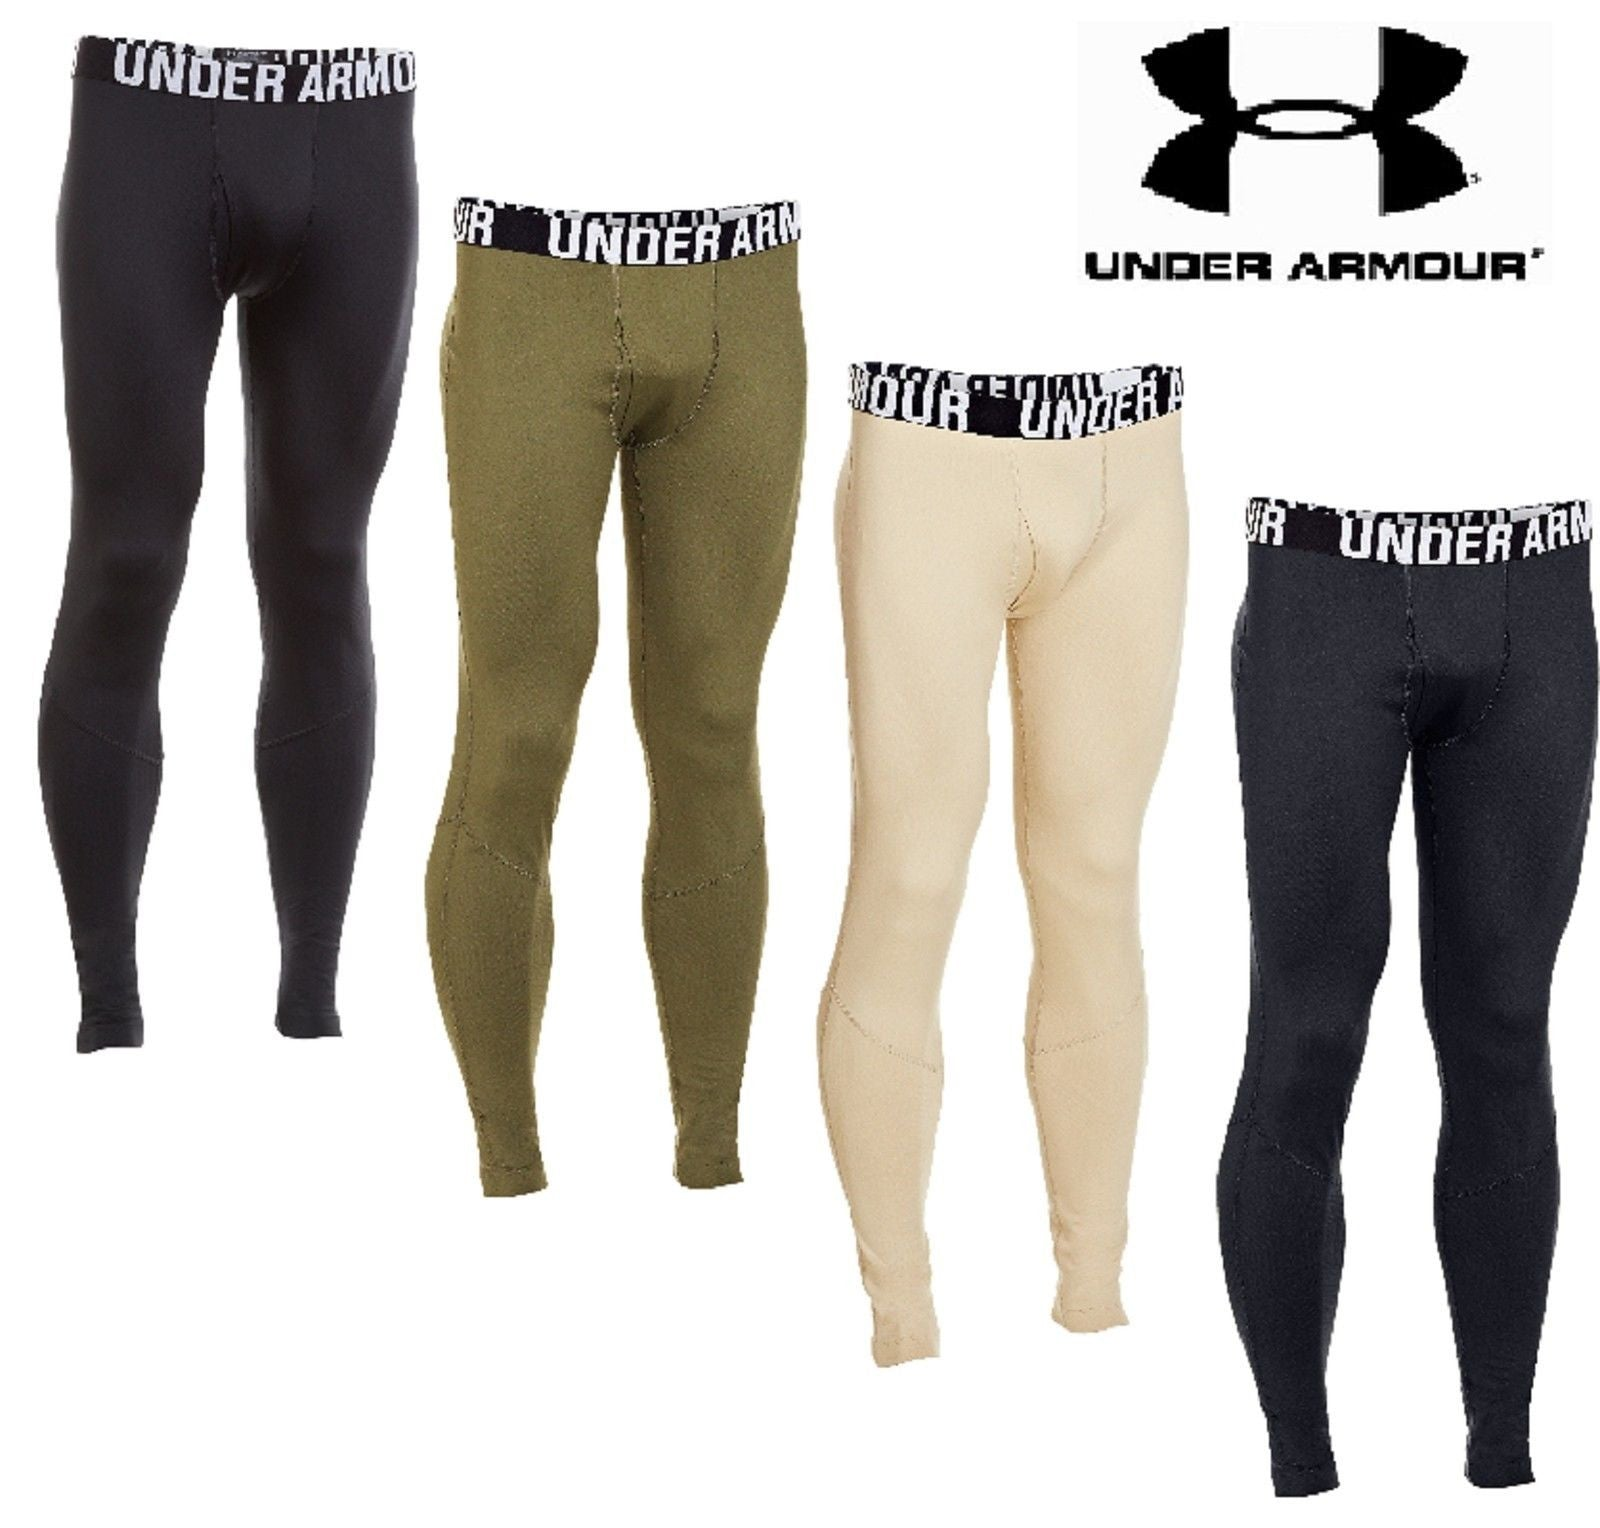 UNDER ARMOUR Men/'s Infrared Tactical Fitted Leggings Black LARGE L NEW with TAG